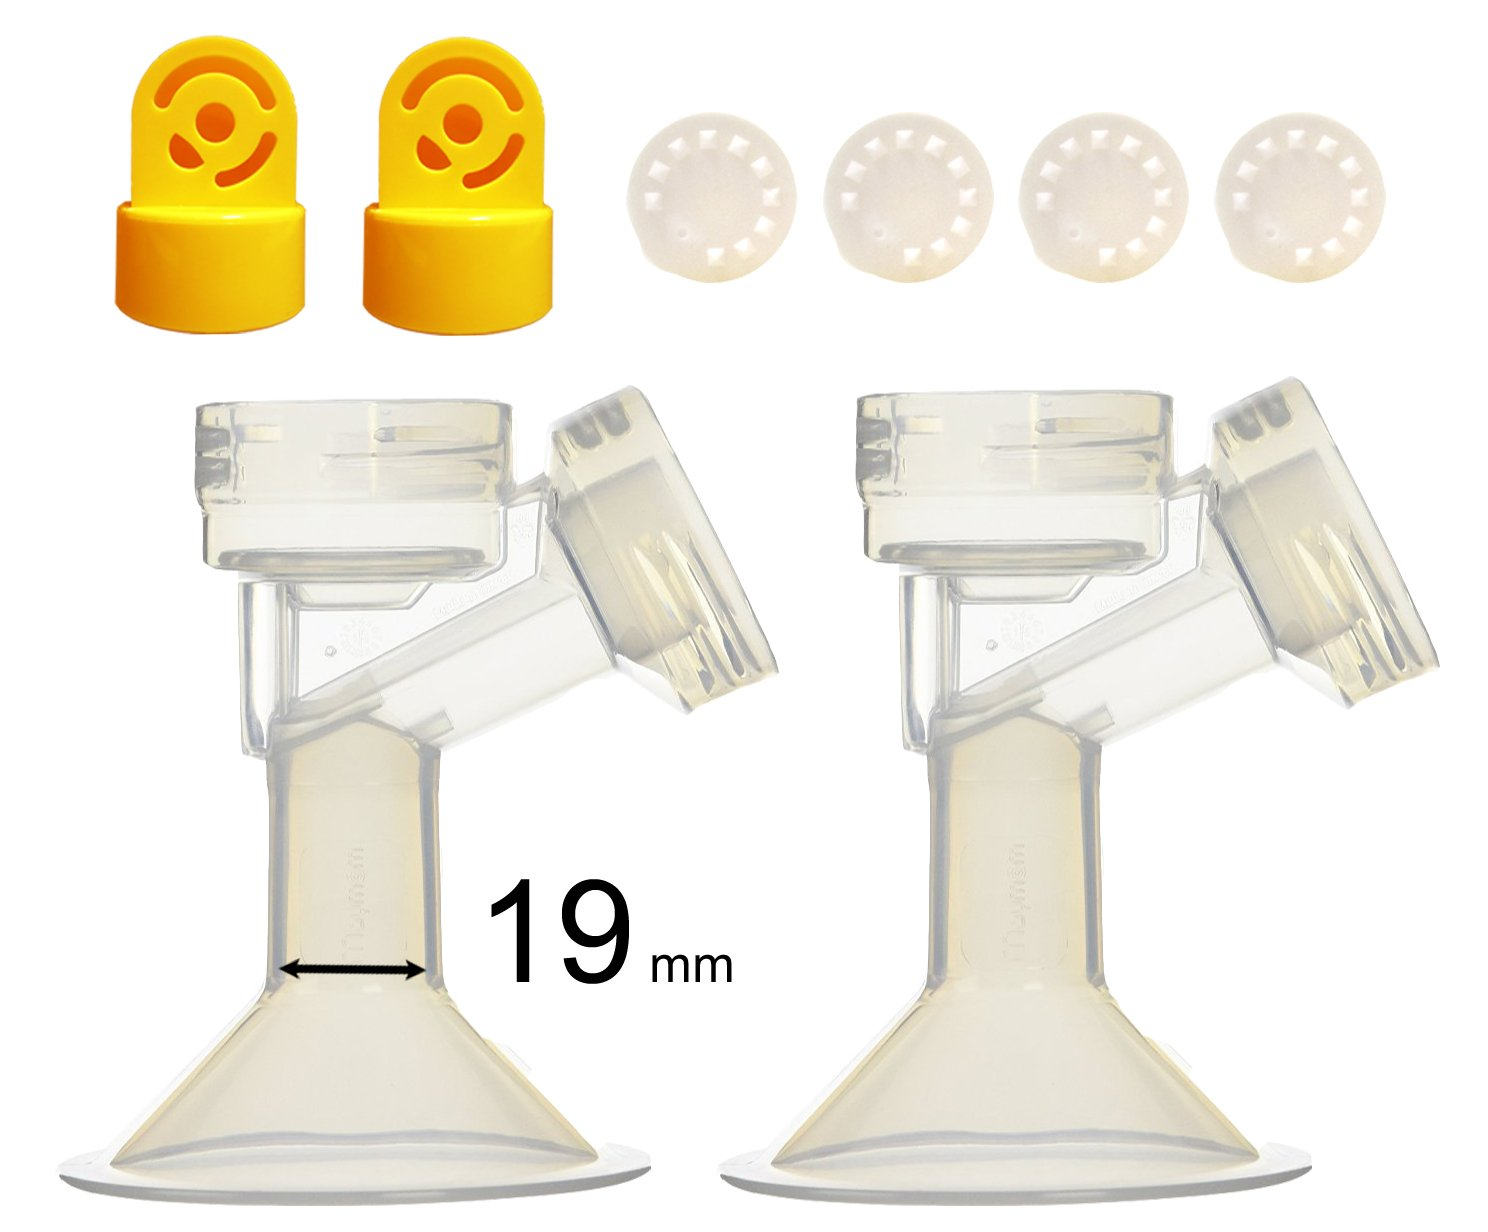 19 mm One-Piece Breastshield w/ Valve, Membrane for Medela Breast Pumps (Pump in Style, Lactina, Symphony); Repalcement of Medela PersonalFit Breastshield (Extra Large, Large, Medium, Small) & Personal Fit Connector; Made by Maymom M001-2LF2V4M